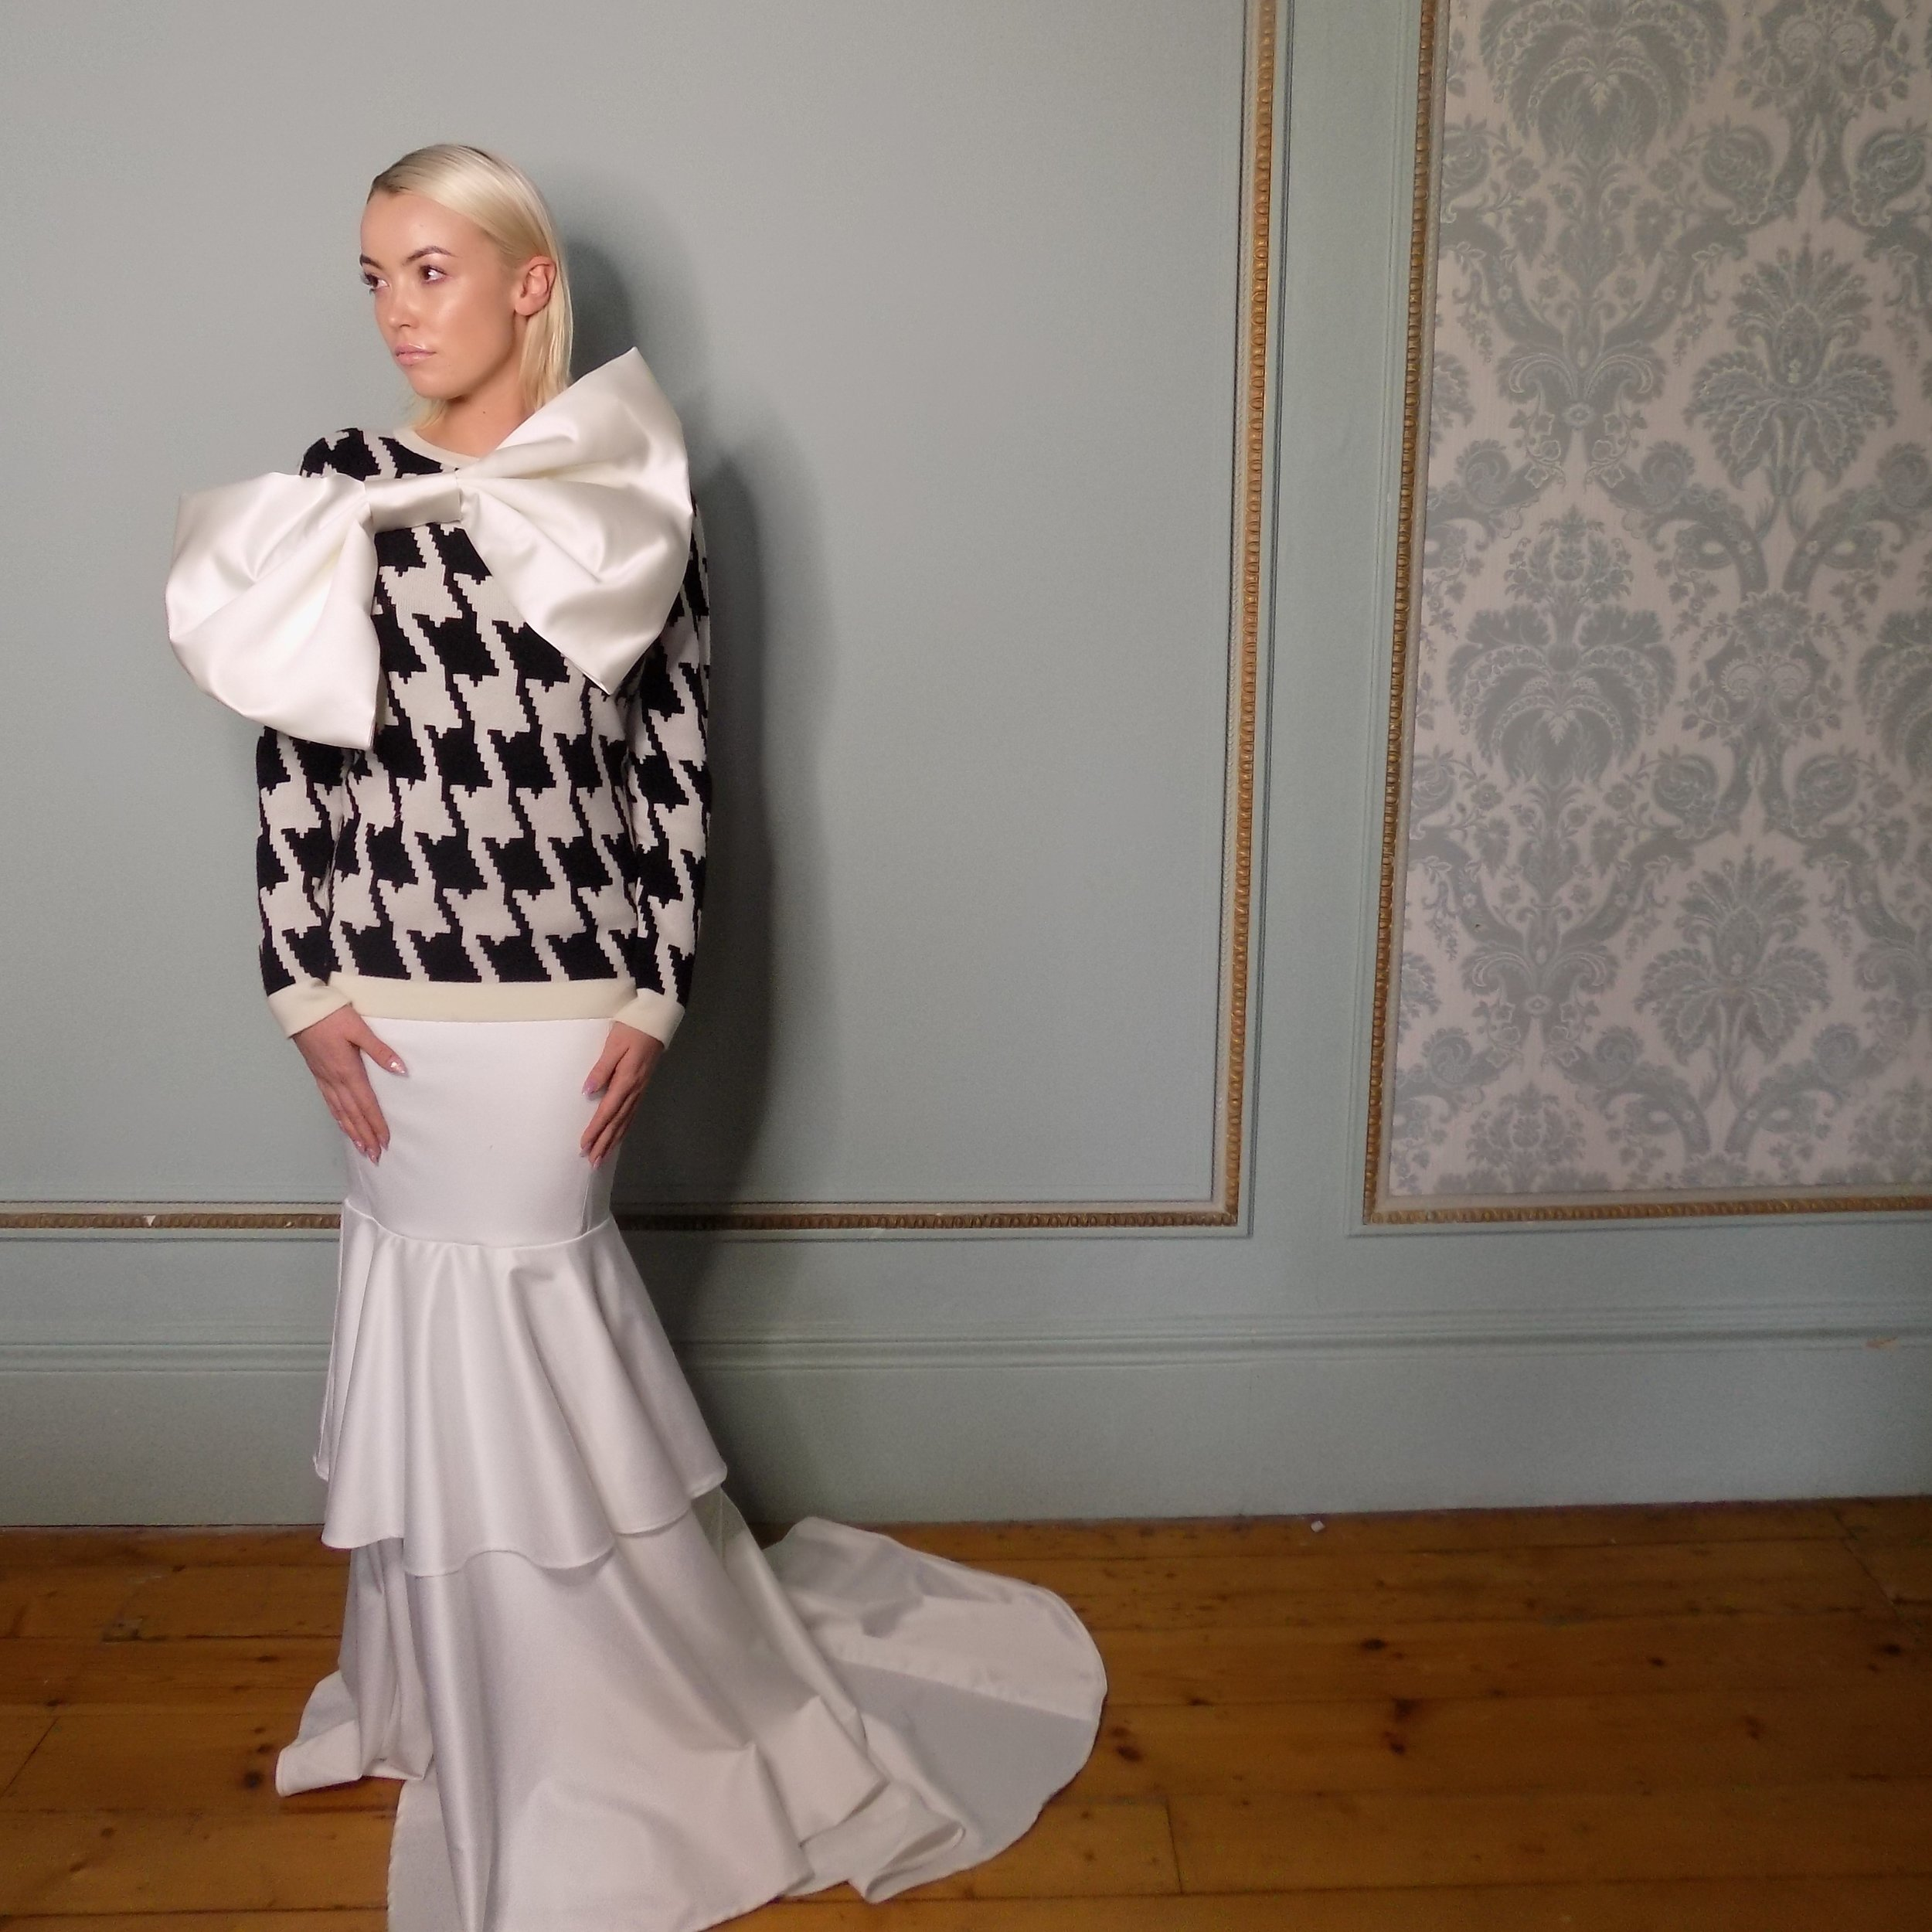 Ariel Wedding Dress £1300 with large bow £40. Cross cashmere Houndstooth £349.